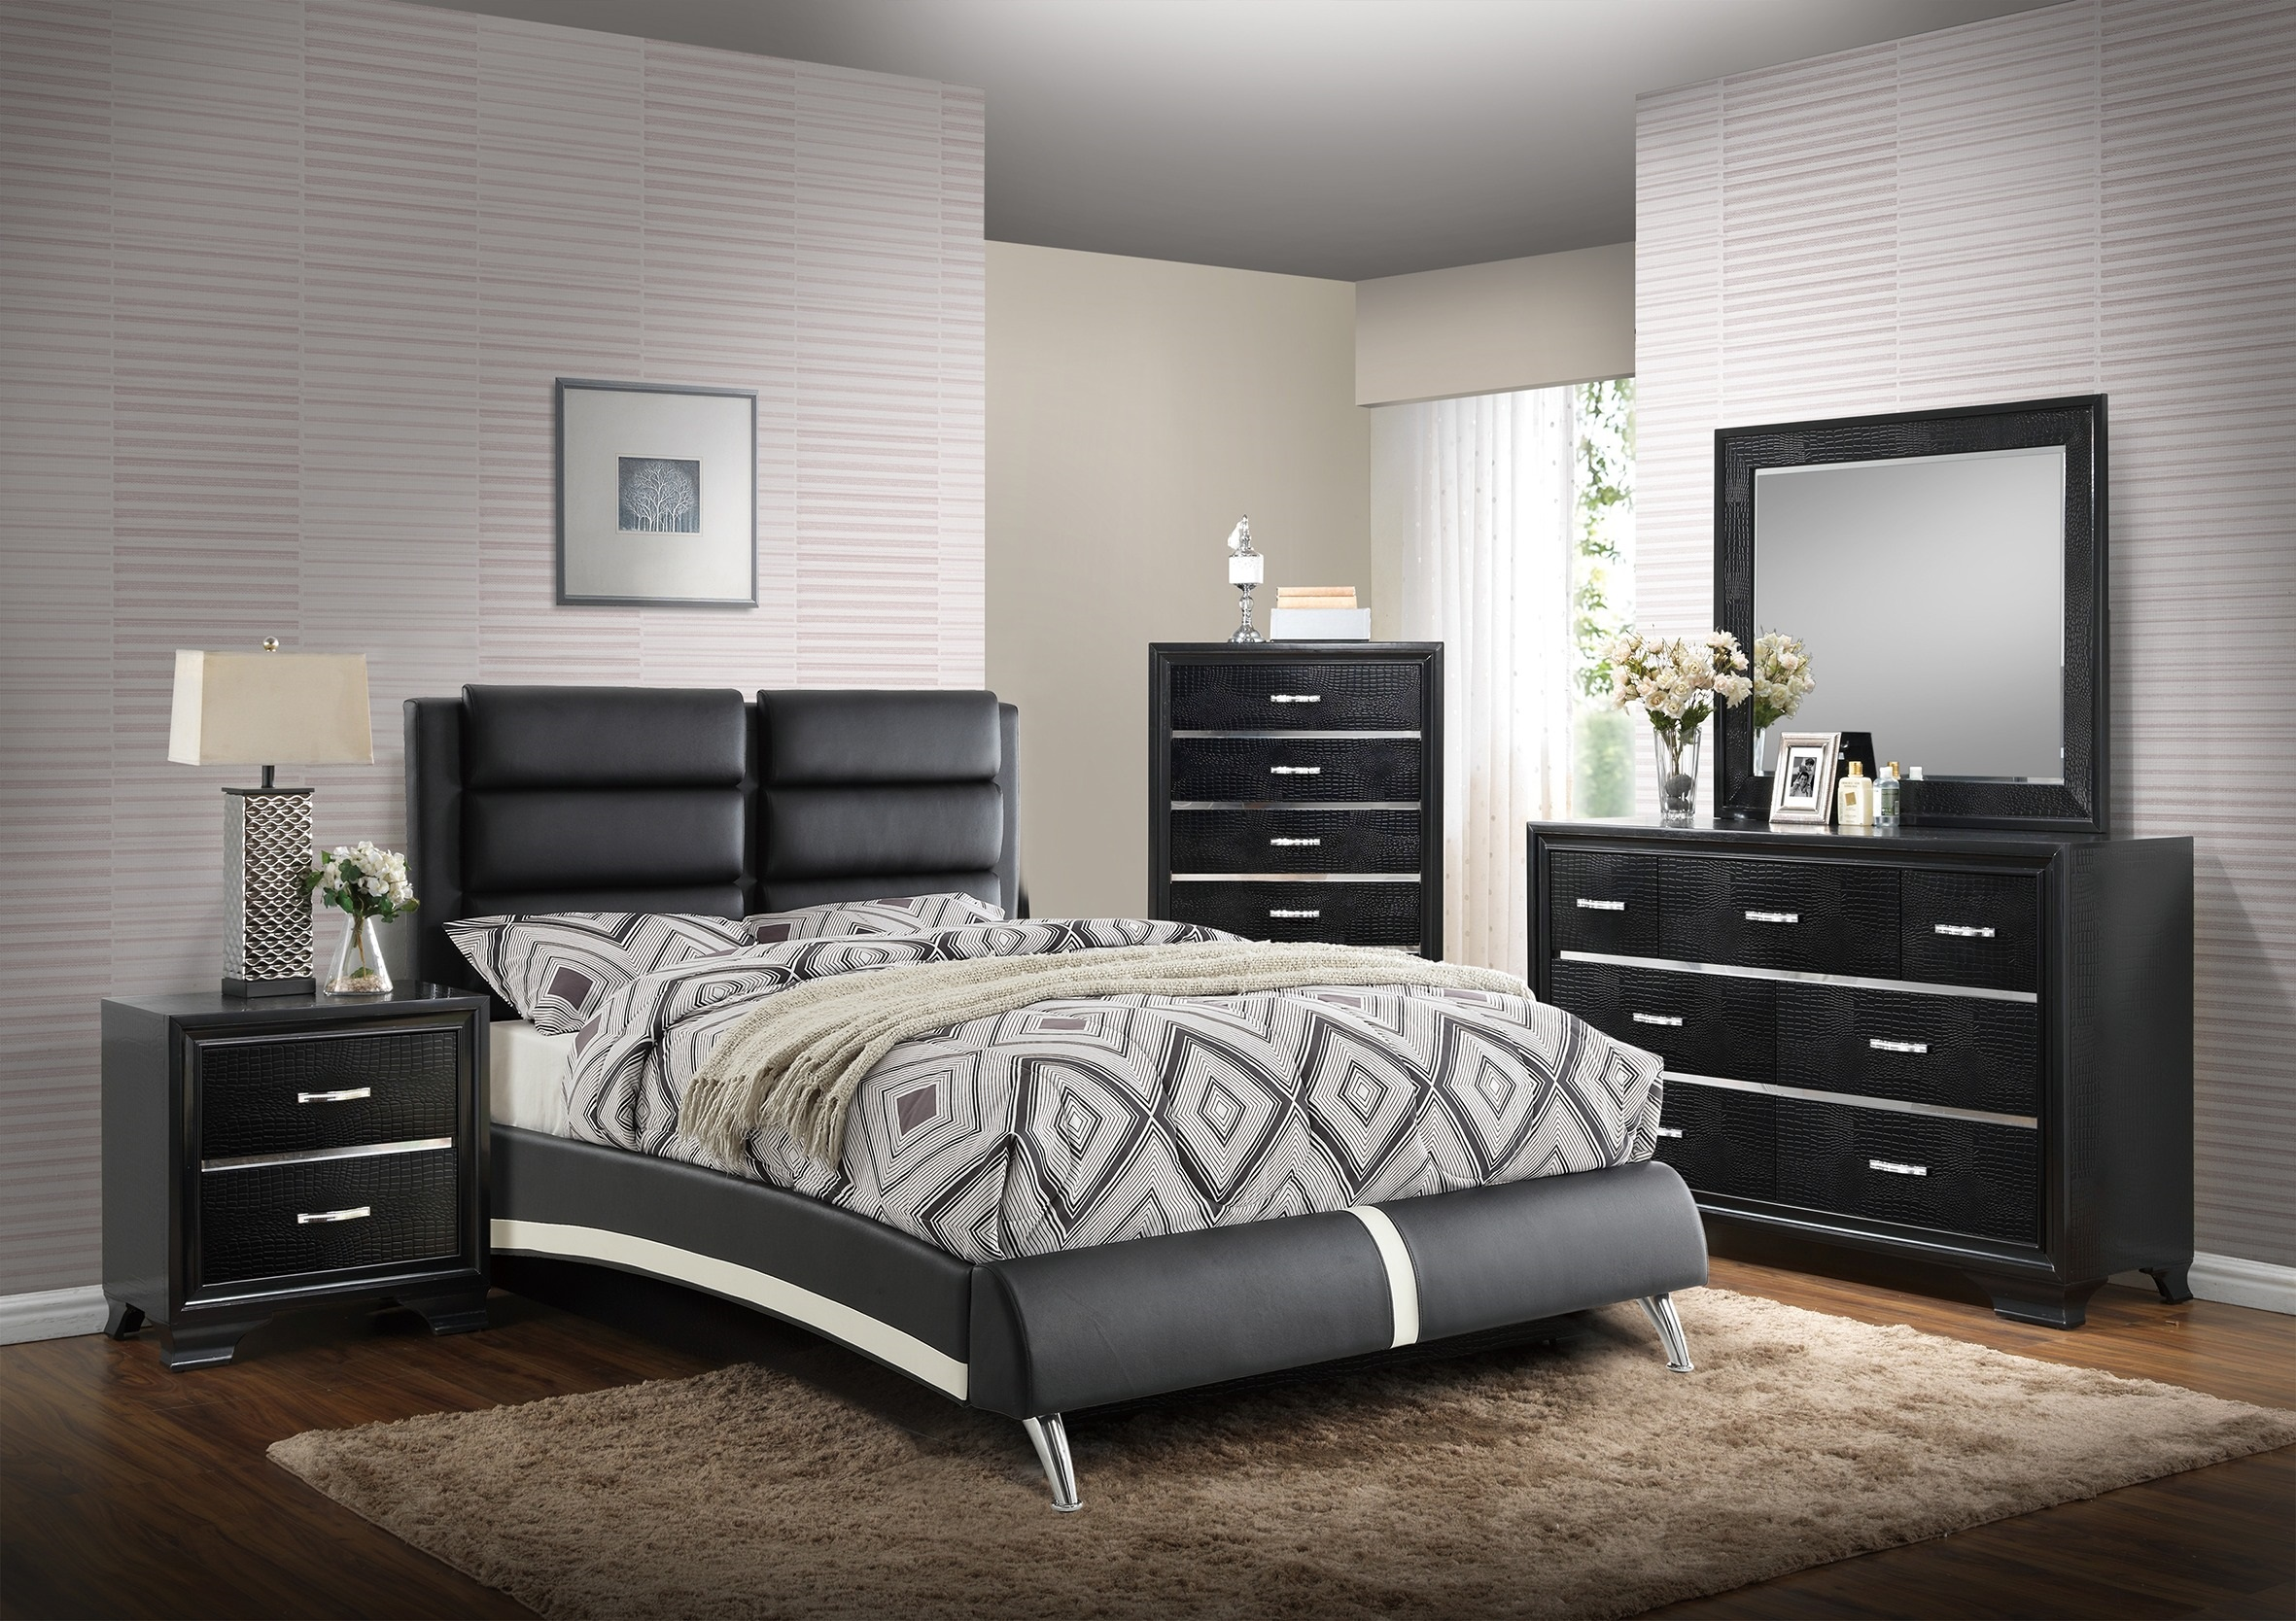 Bedroom Furniture 4pc Set Black Faux Leather Eastern King Size Bed Set Dresser Nightstand Mirror